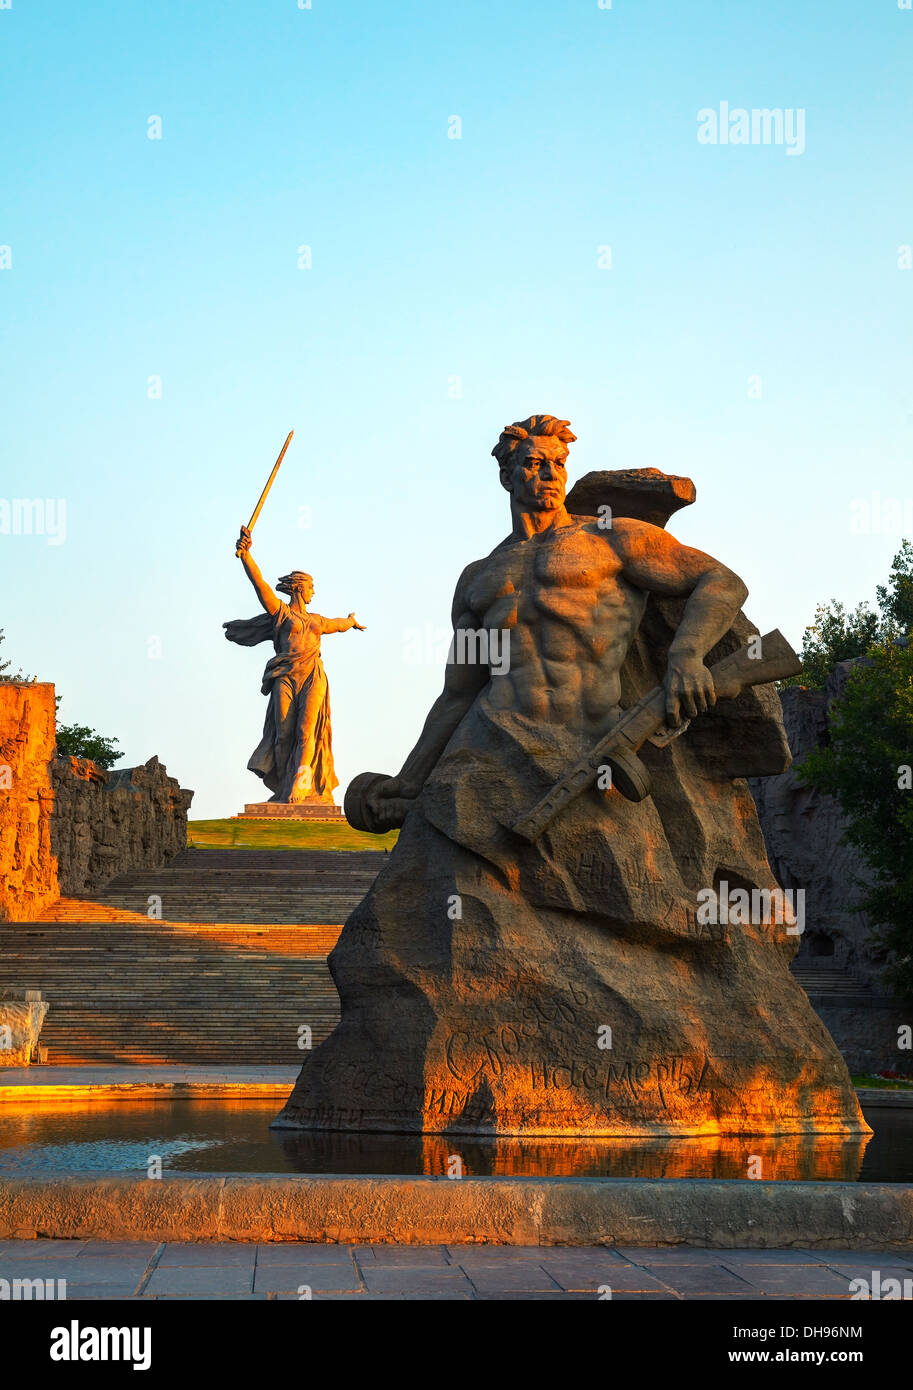 'The Motherland calls!' monument  in Volgograd, Russia. - Stock Image